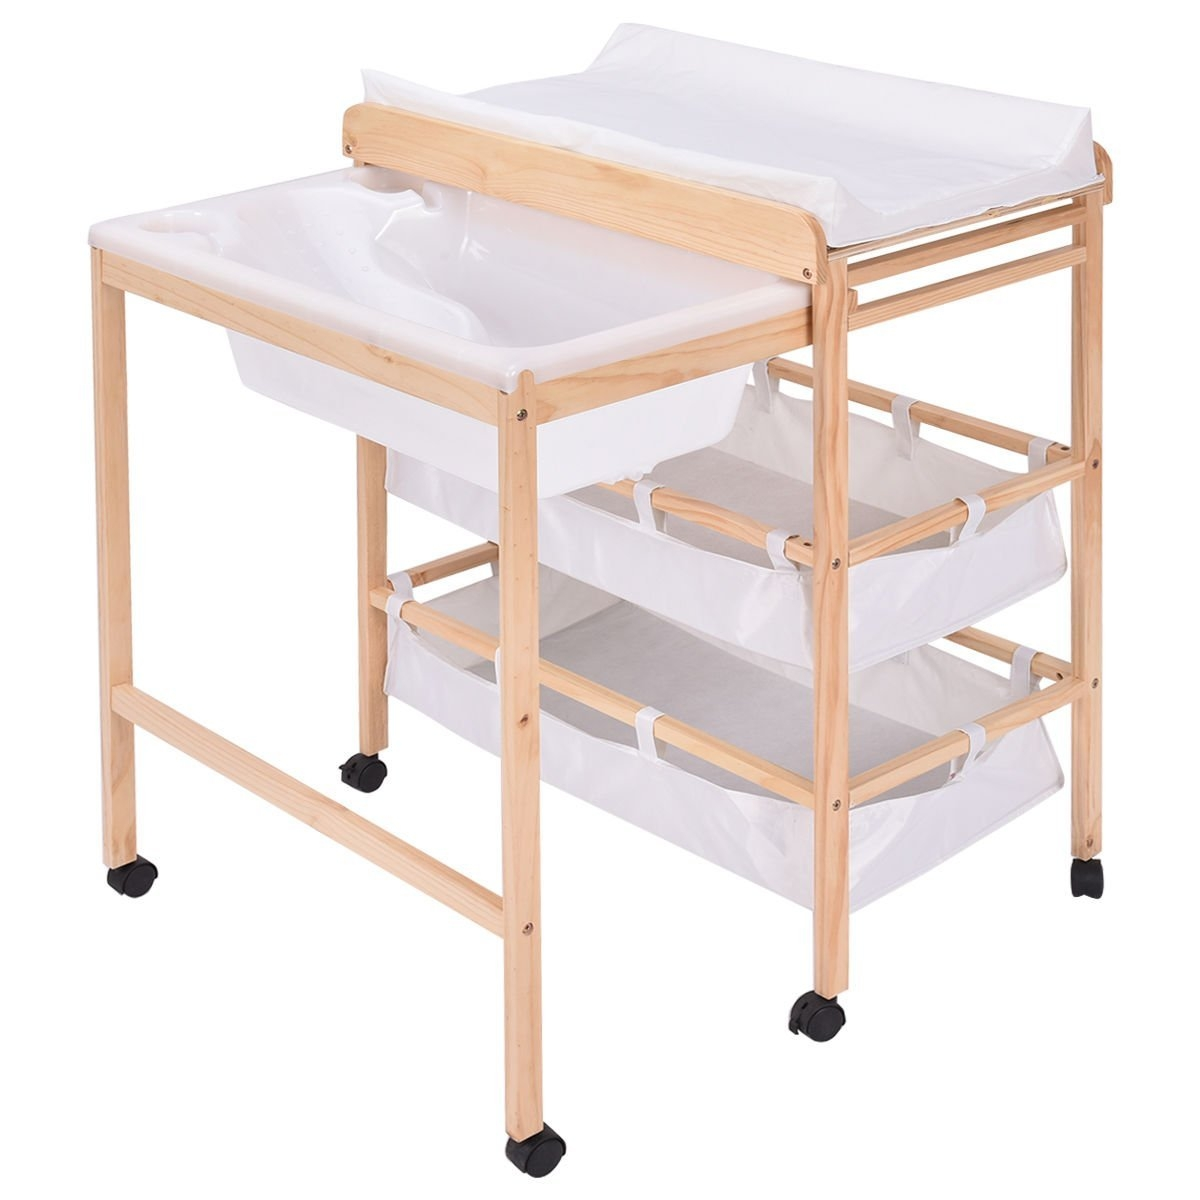 New MTN-G Baby Changing Table Nursery Unit Storage Station Pad Tray Integrated Bathtub by Quality Brand